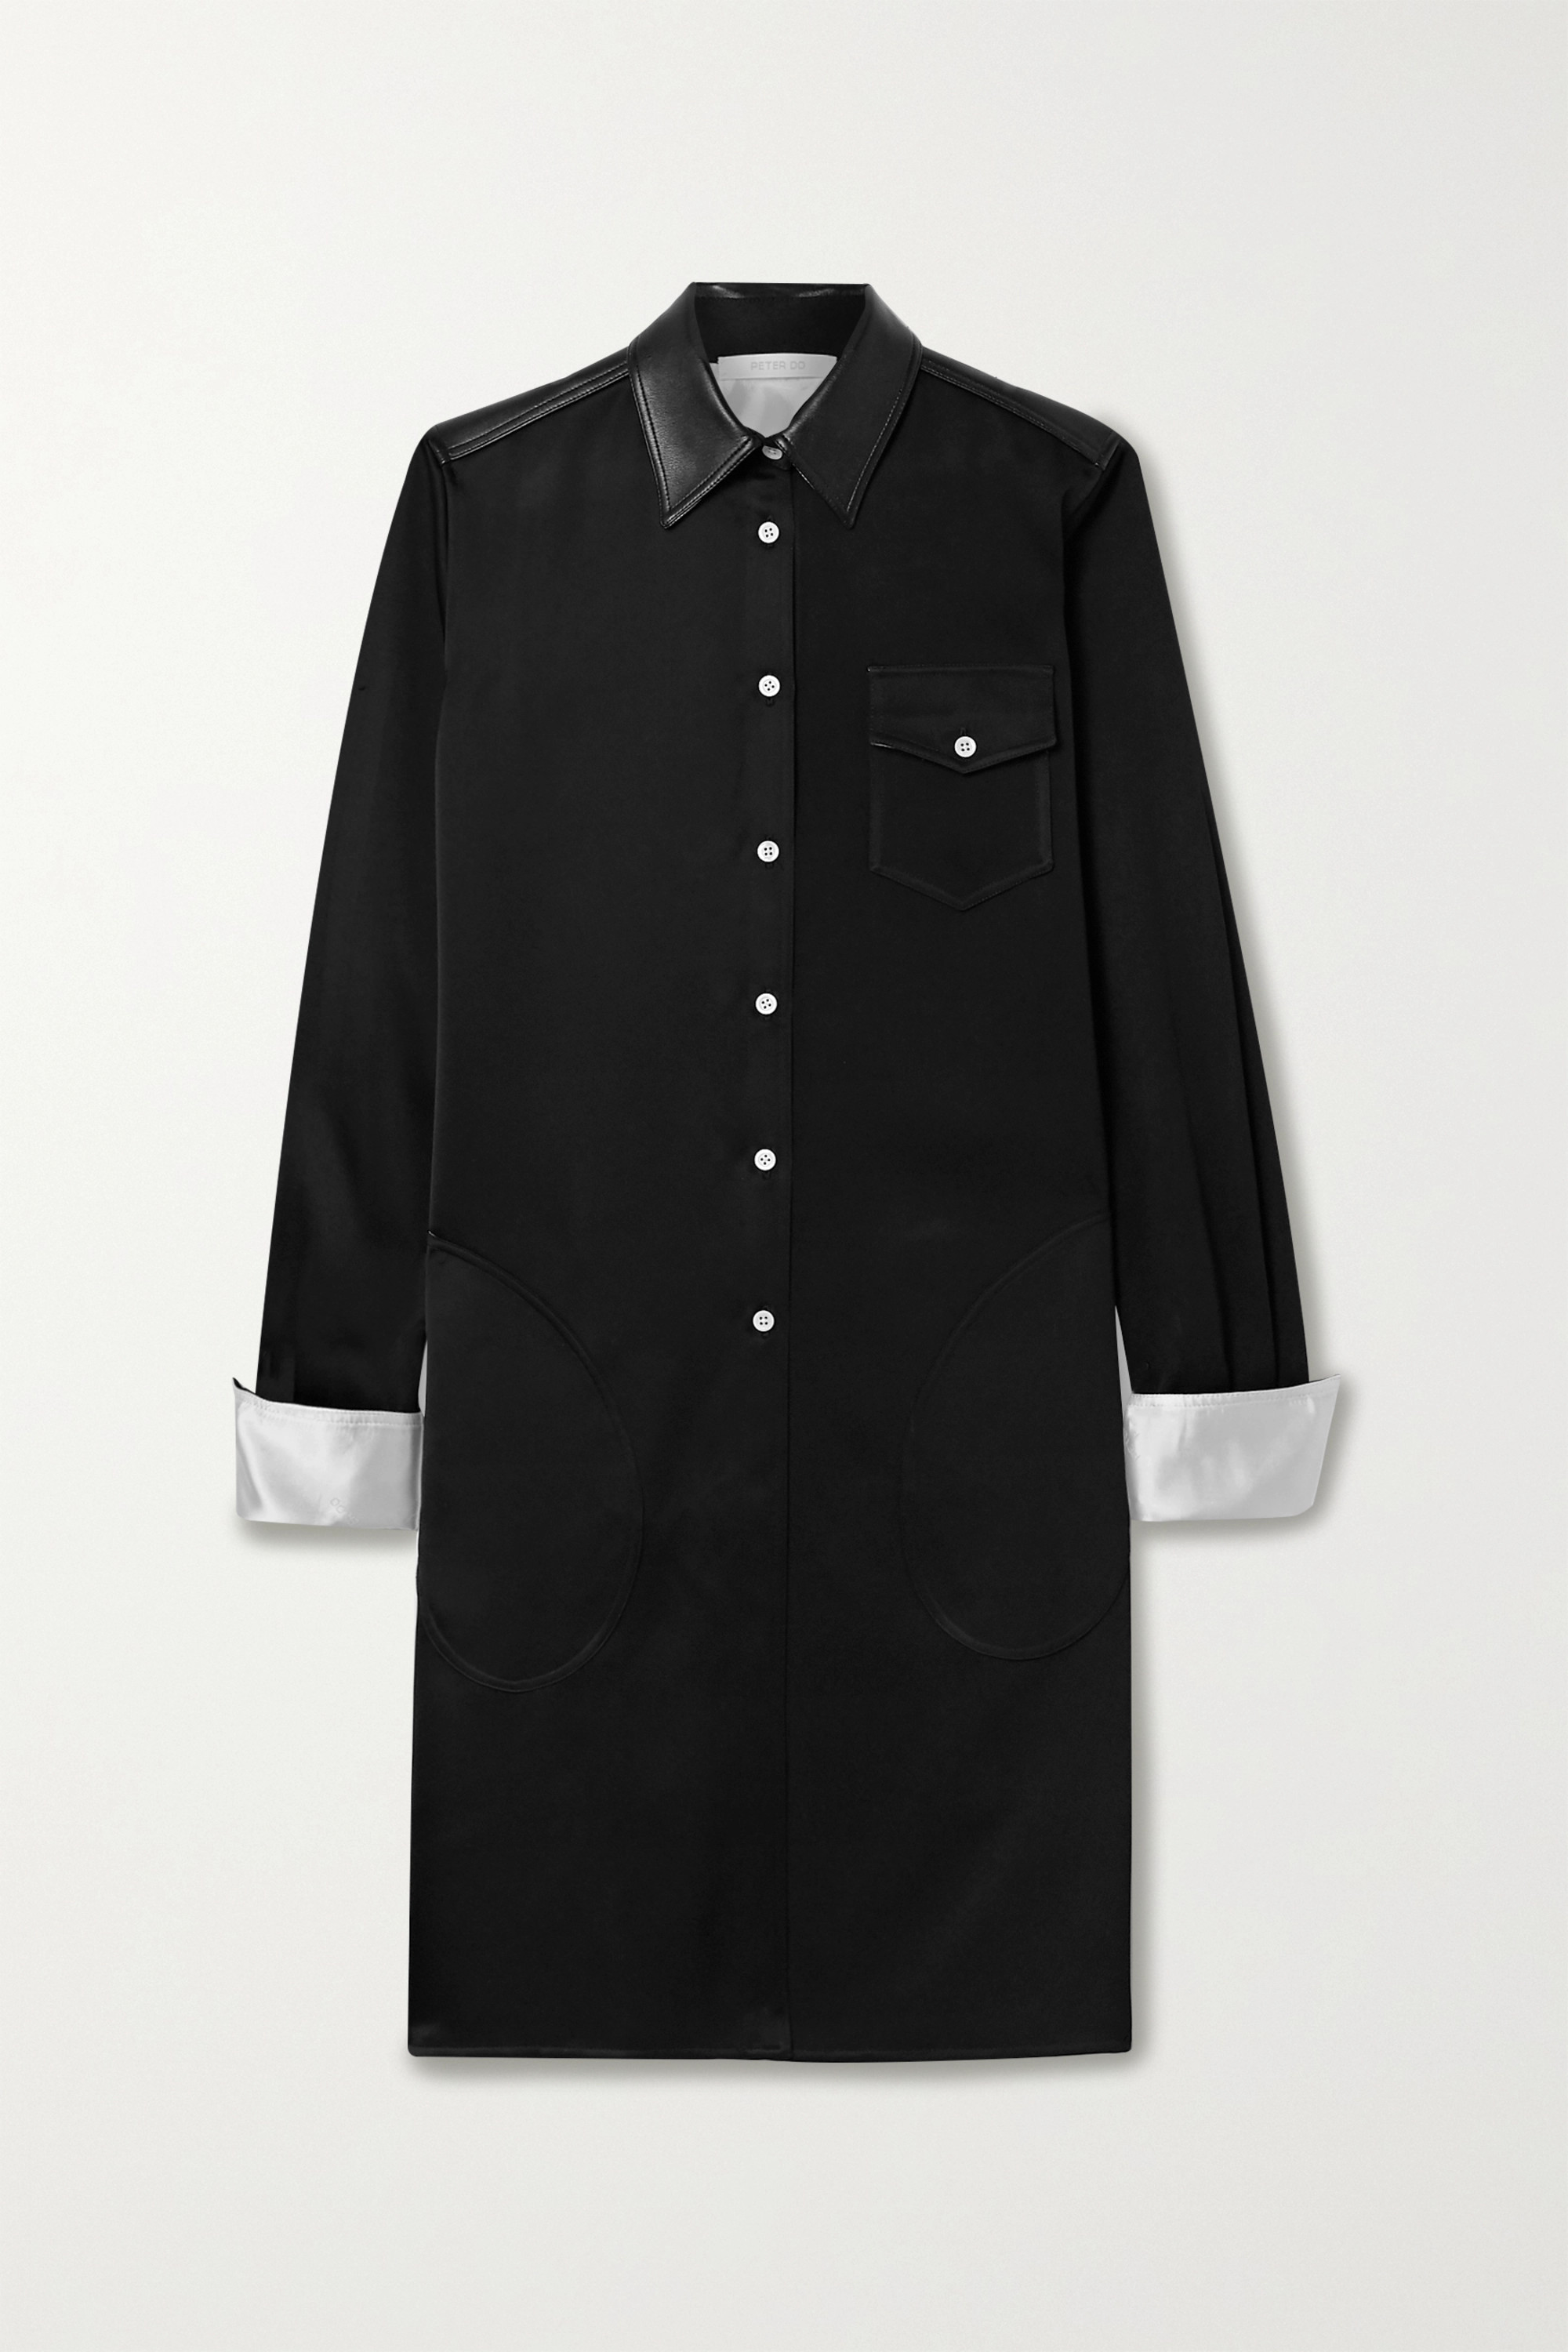 Peter Do Faux leather-trimmed satin-twill shirt dress